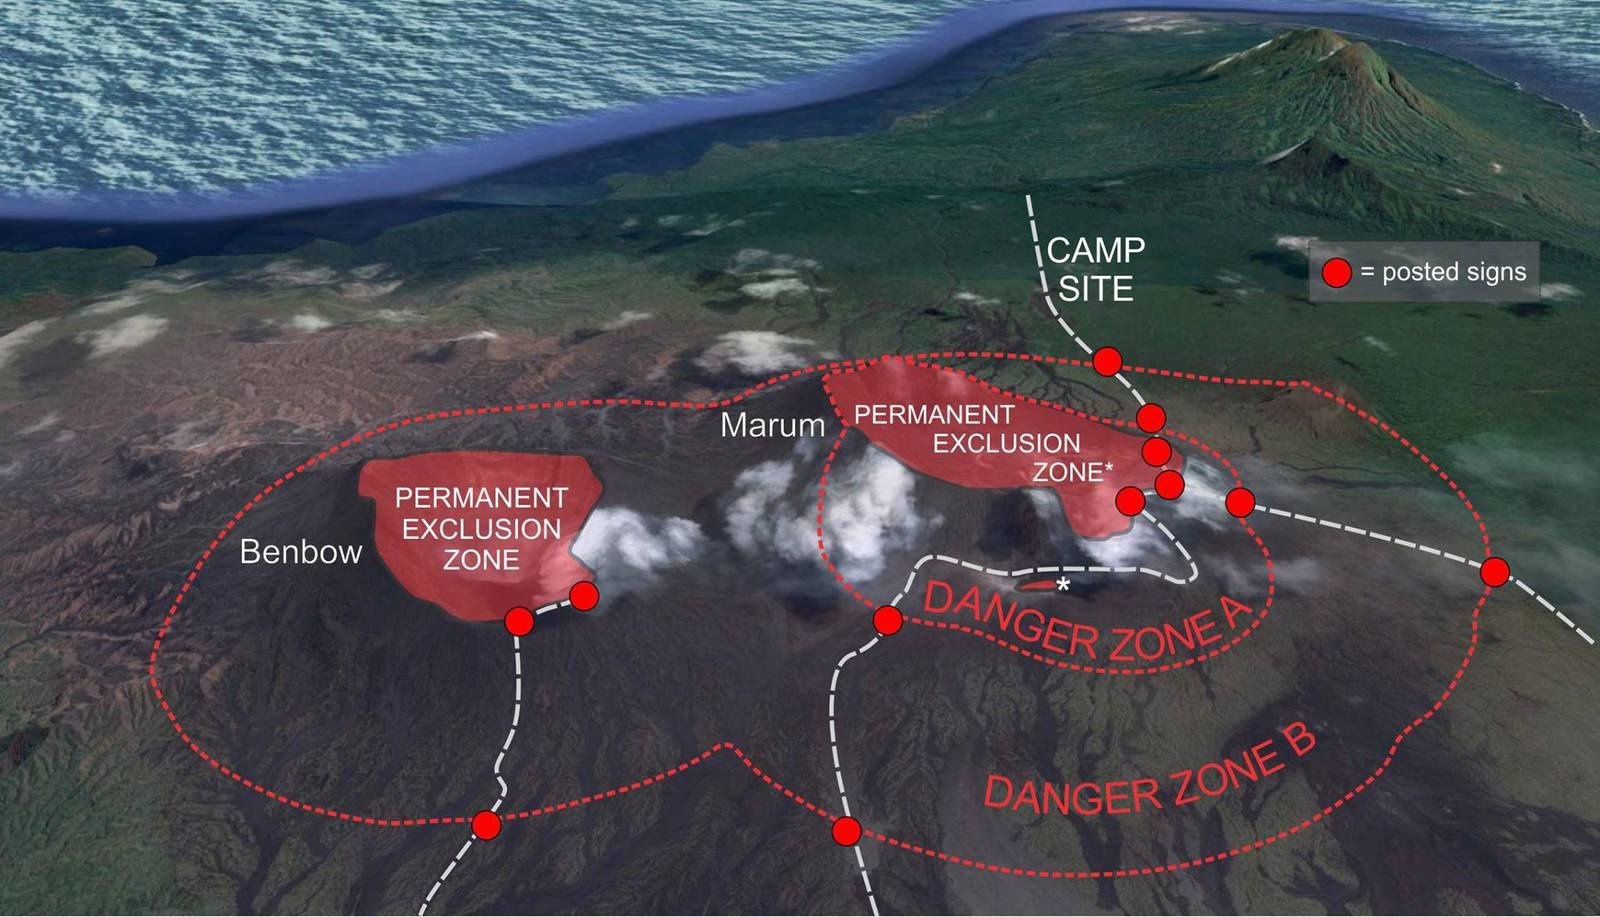 Ambrym - permanent exclusion zones and danger zones A & B - Doc. Vanuatu Geohazards Observatory